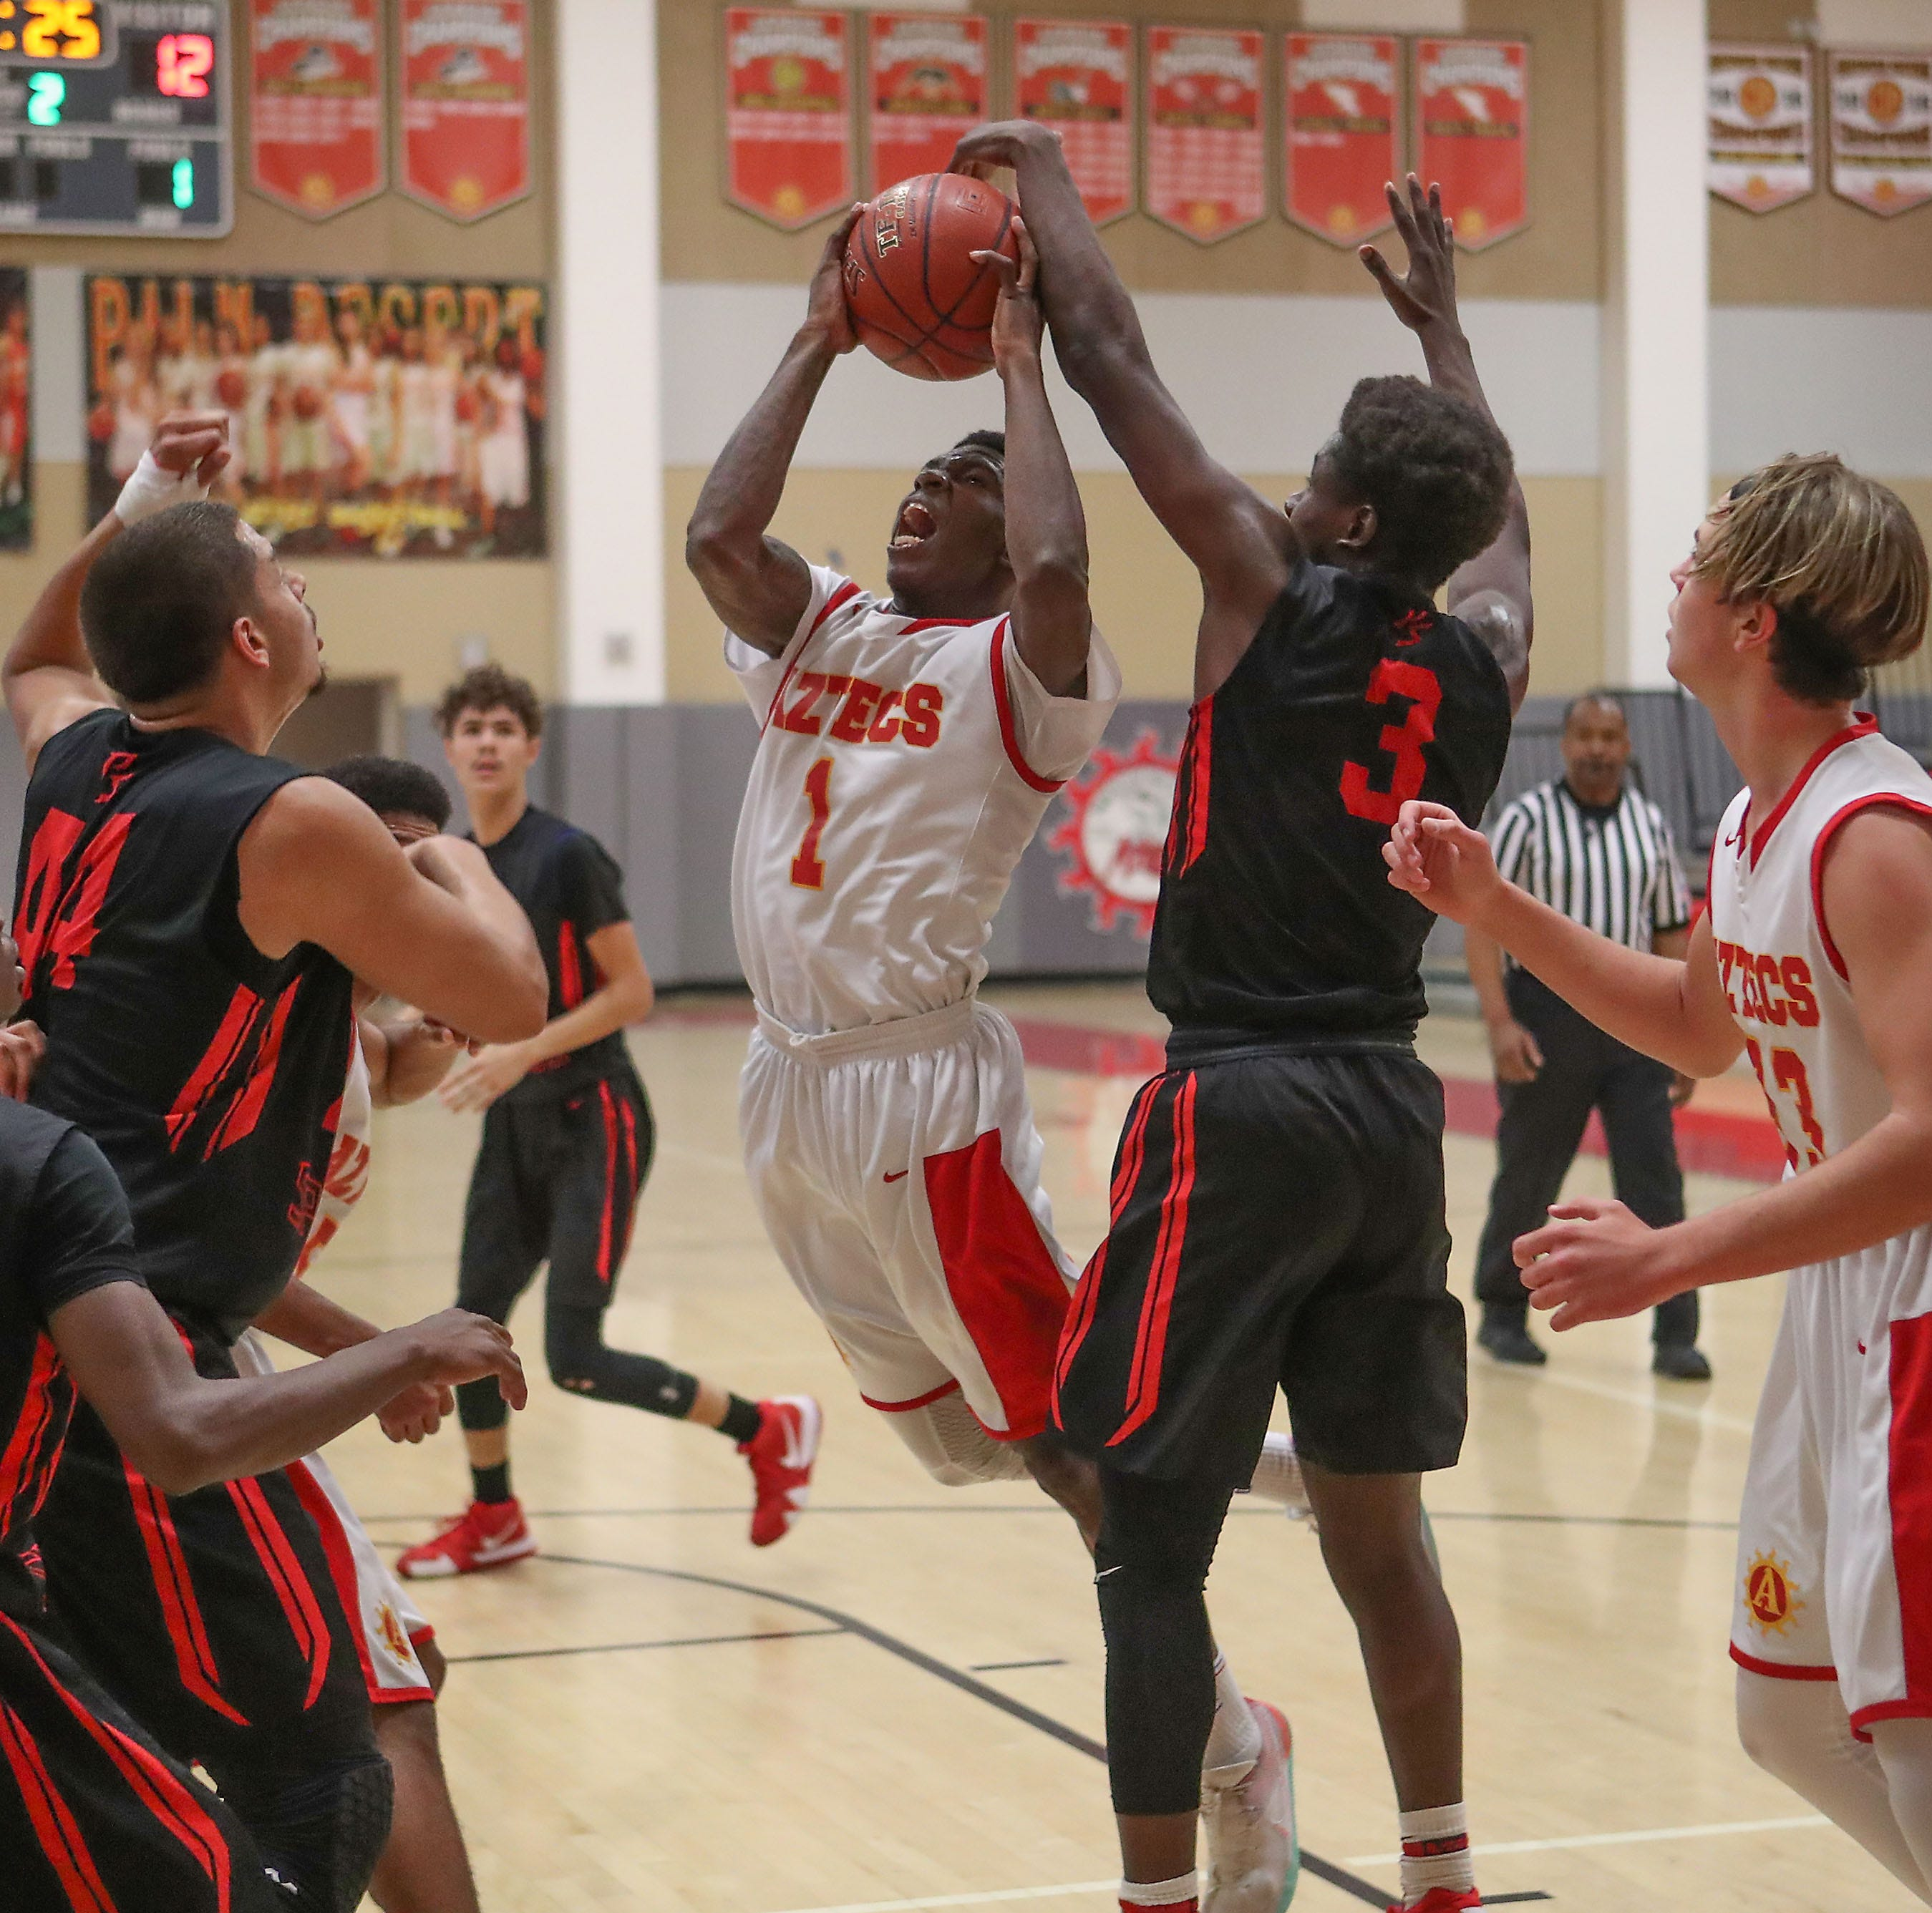 Palm Springs basketball the ultimate road warriors, move to 9-0 on season with seven road wins